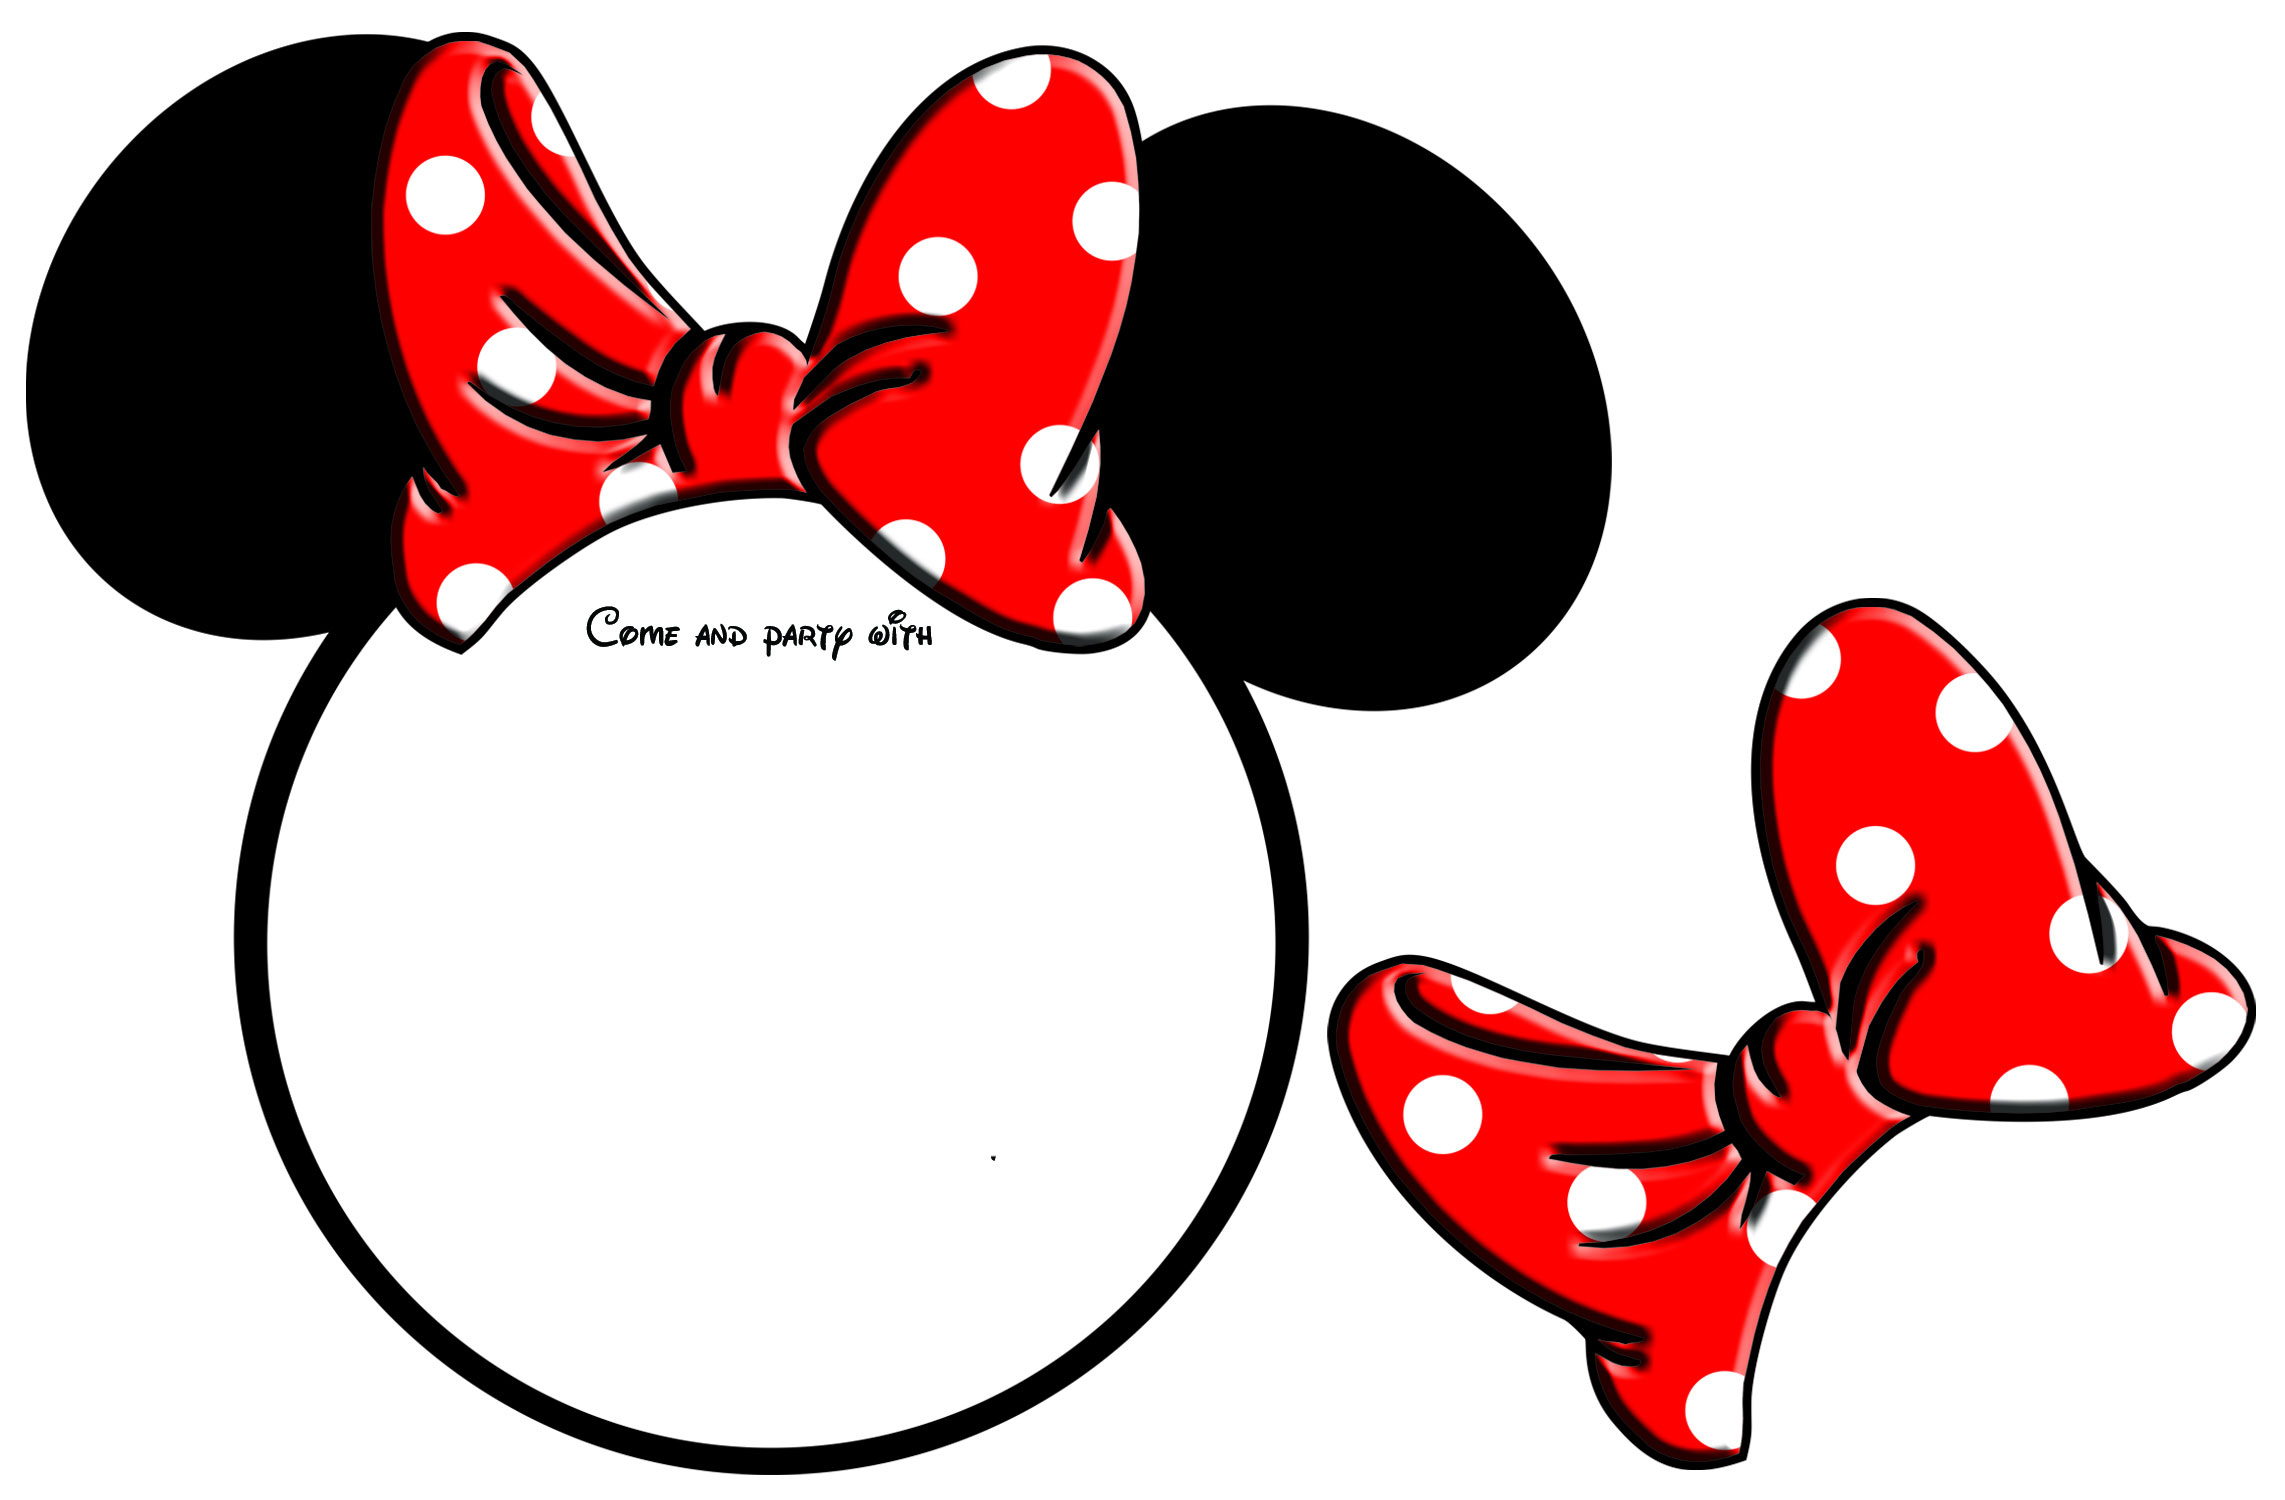 736x614 Minnie Mouse Face Clipart Outline 2 2285x1500 10 Year Old Birthday Invitations Dolanpedia Ideas